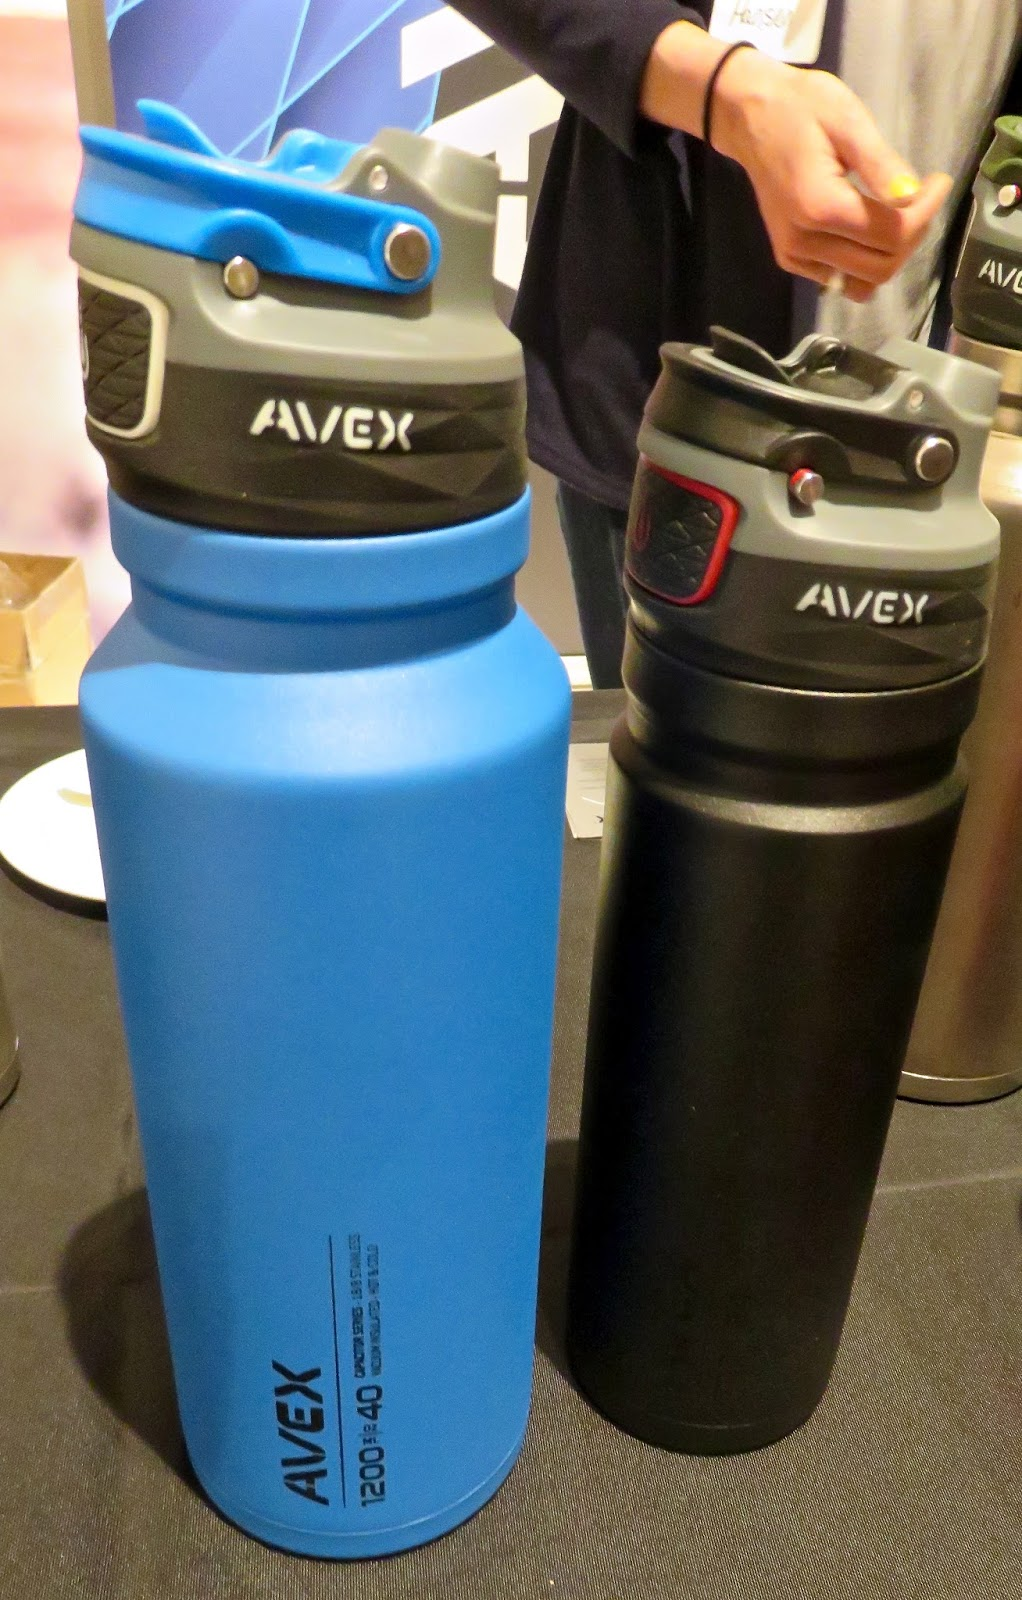 1a6725128b AVEX OUTDOOR AVEX FreeFlow and Fuse insulated bottle in BPA-free Eastman  Tritan co-polyester or rugged powder-coat finished, double-walled,  vacuum-sealed ...